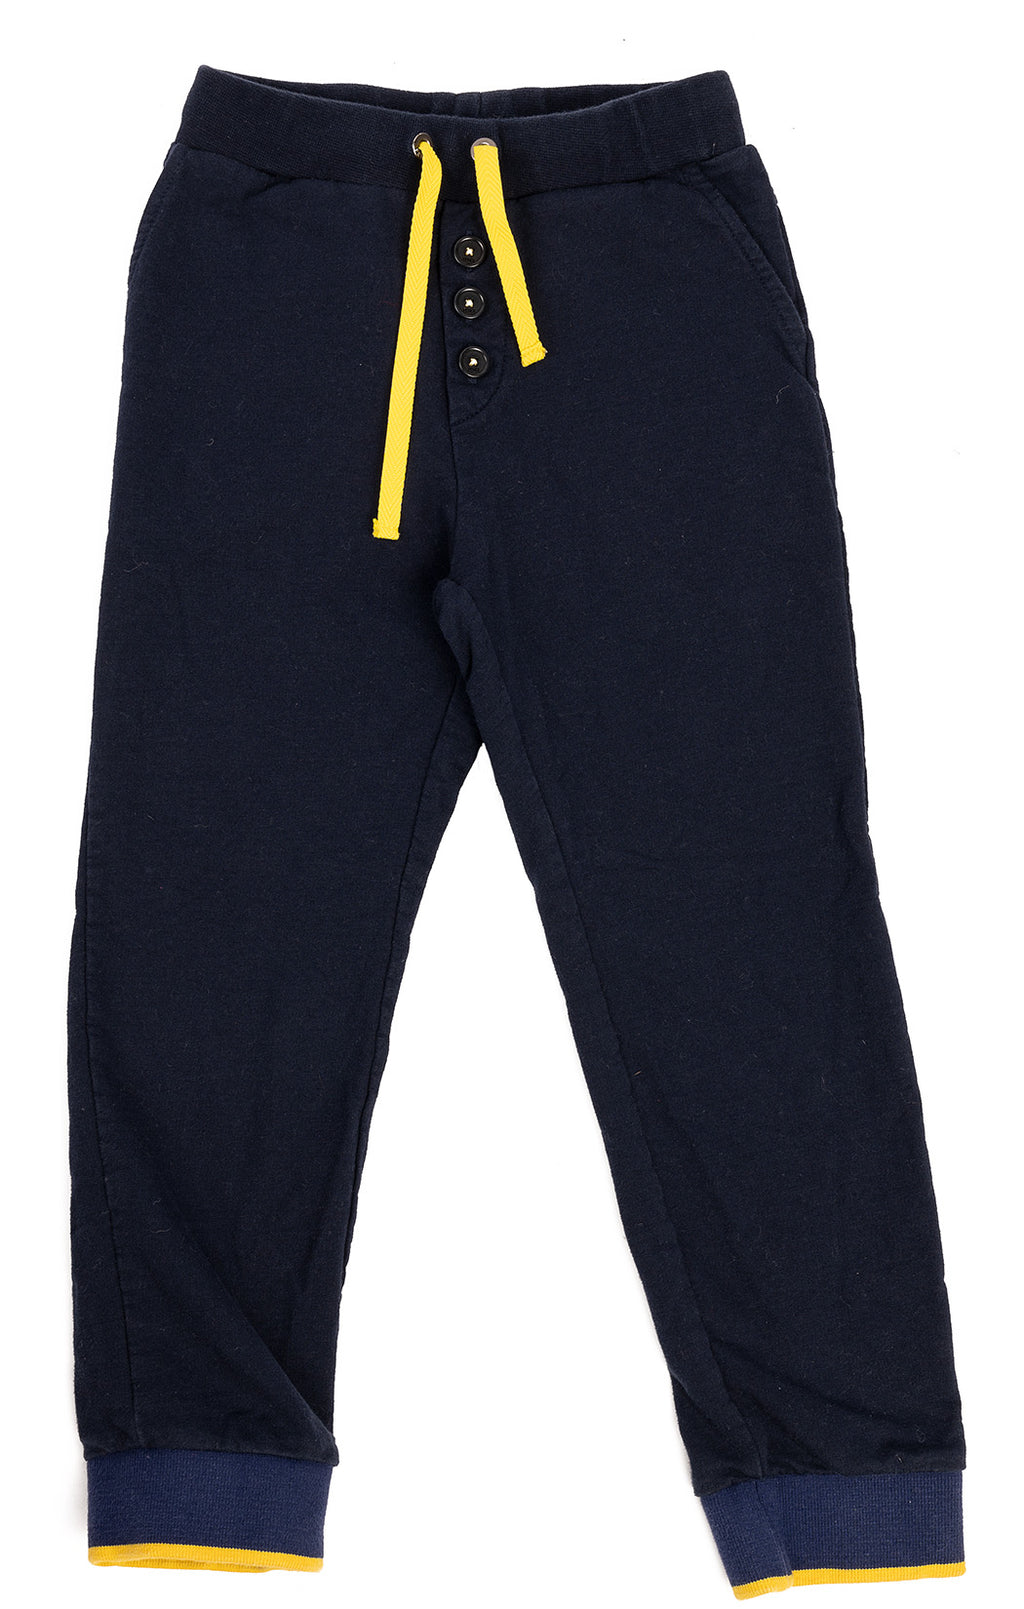 FENDI Sweatpants  Size: 6